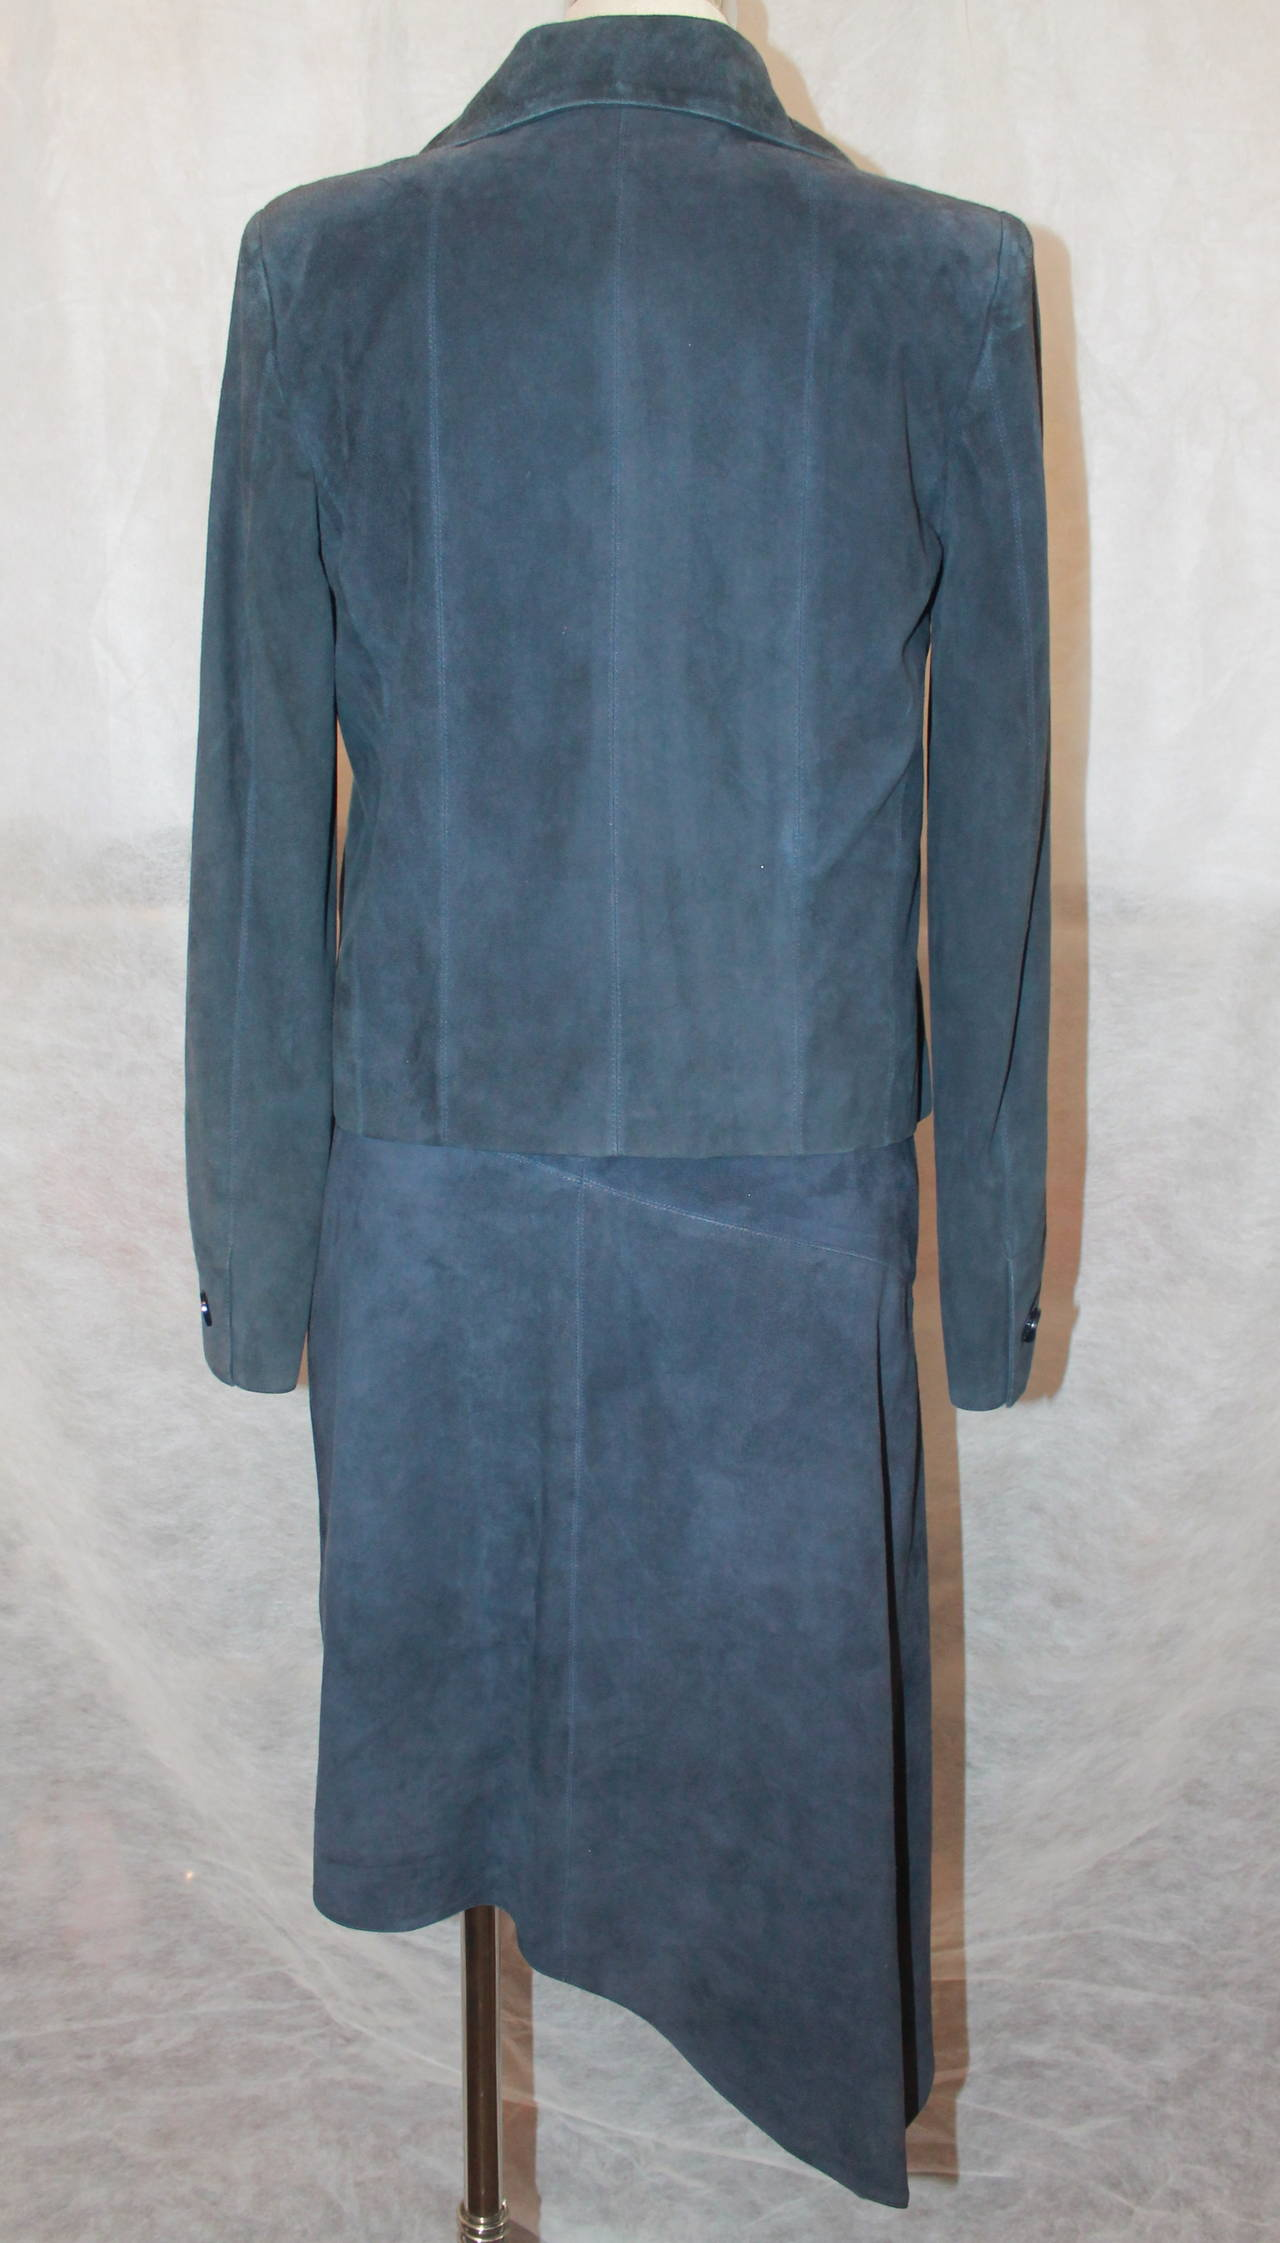 Women's 2002 Chanel Navy Suede Two Piece Dress and Jacket - 38 For Sale